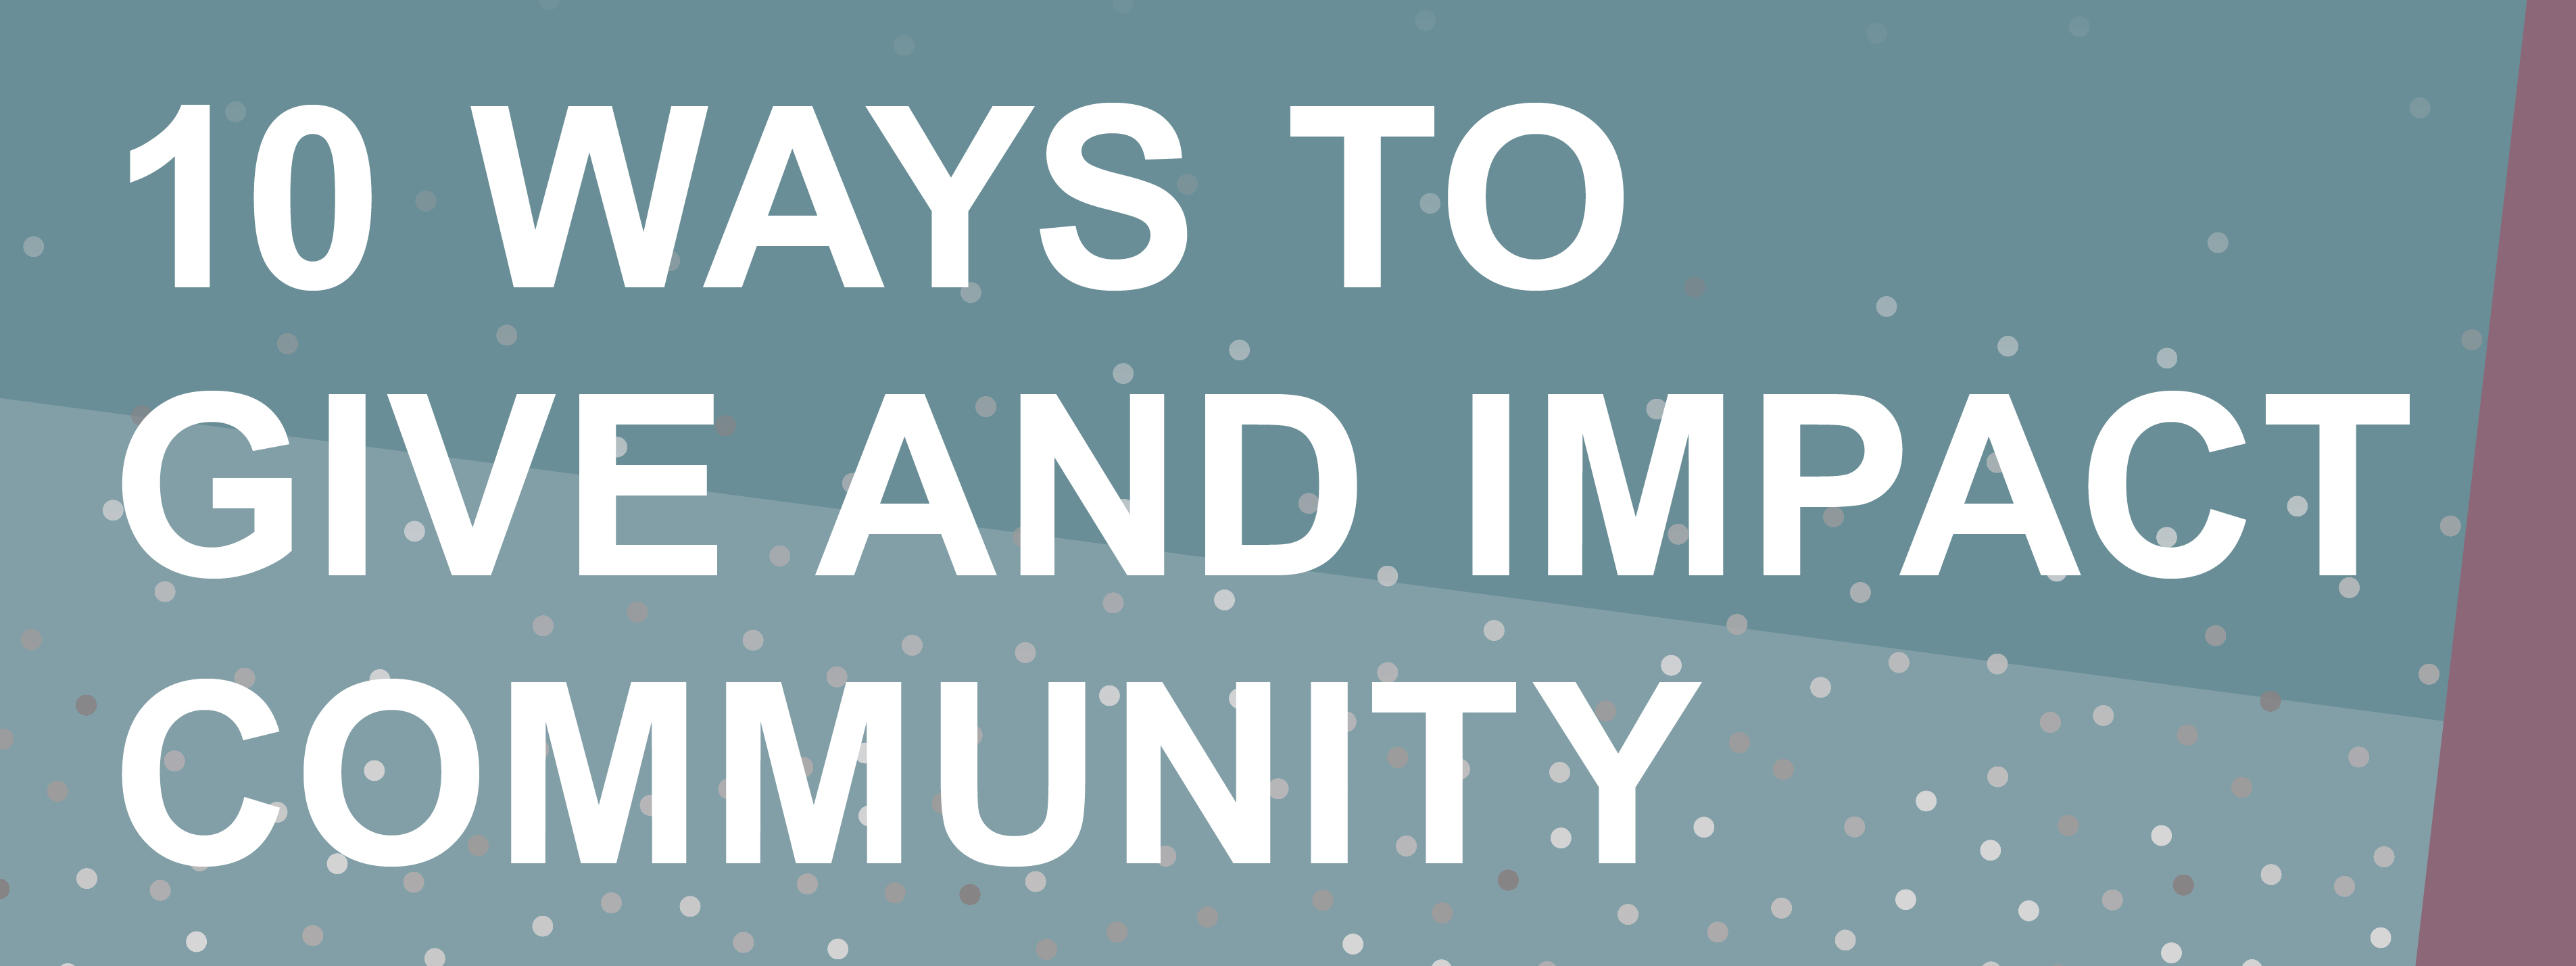 10 Ways to Give and Impact Community